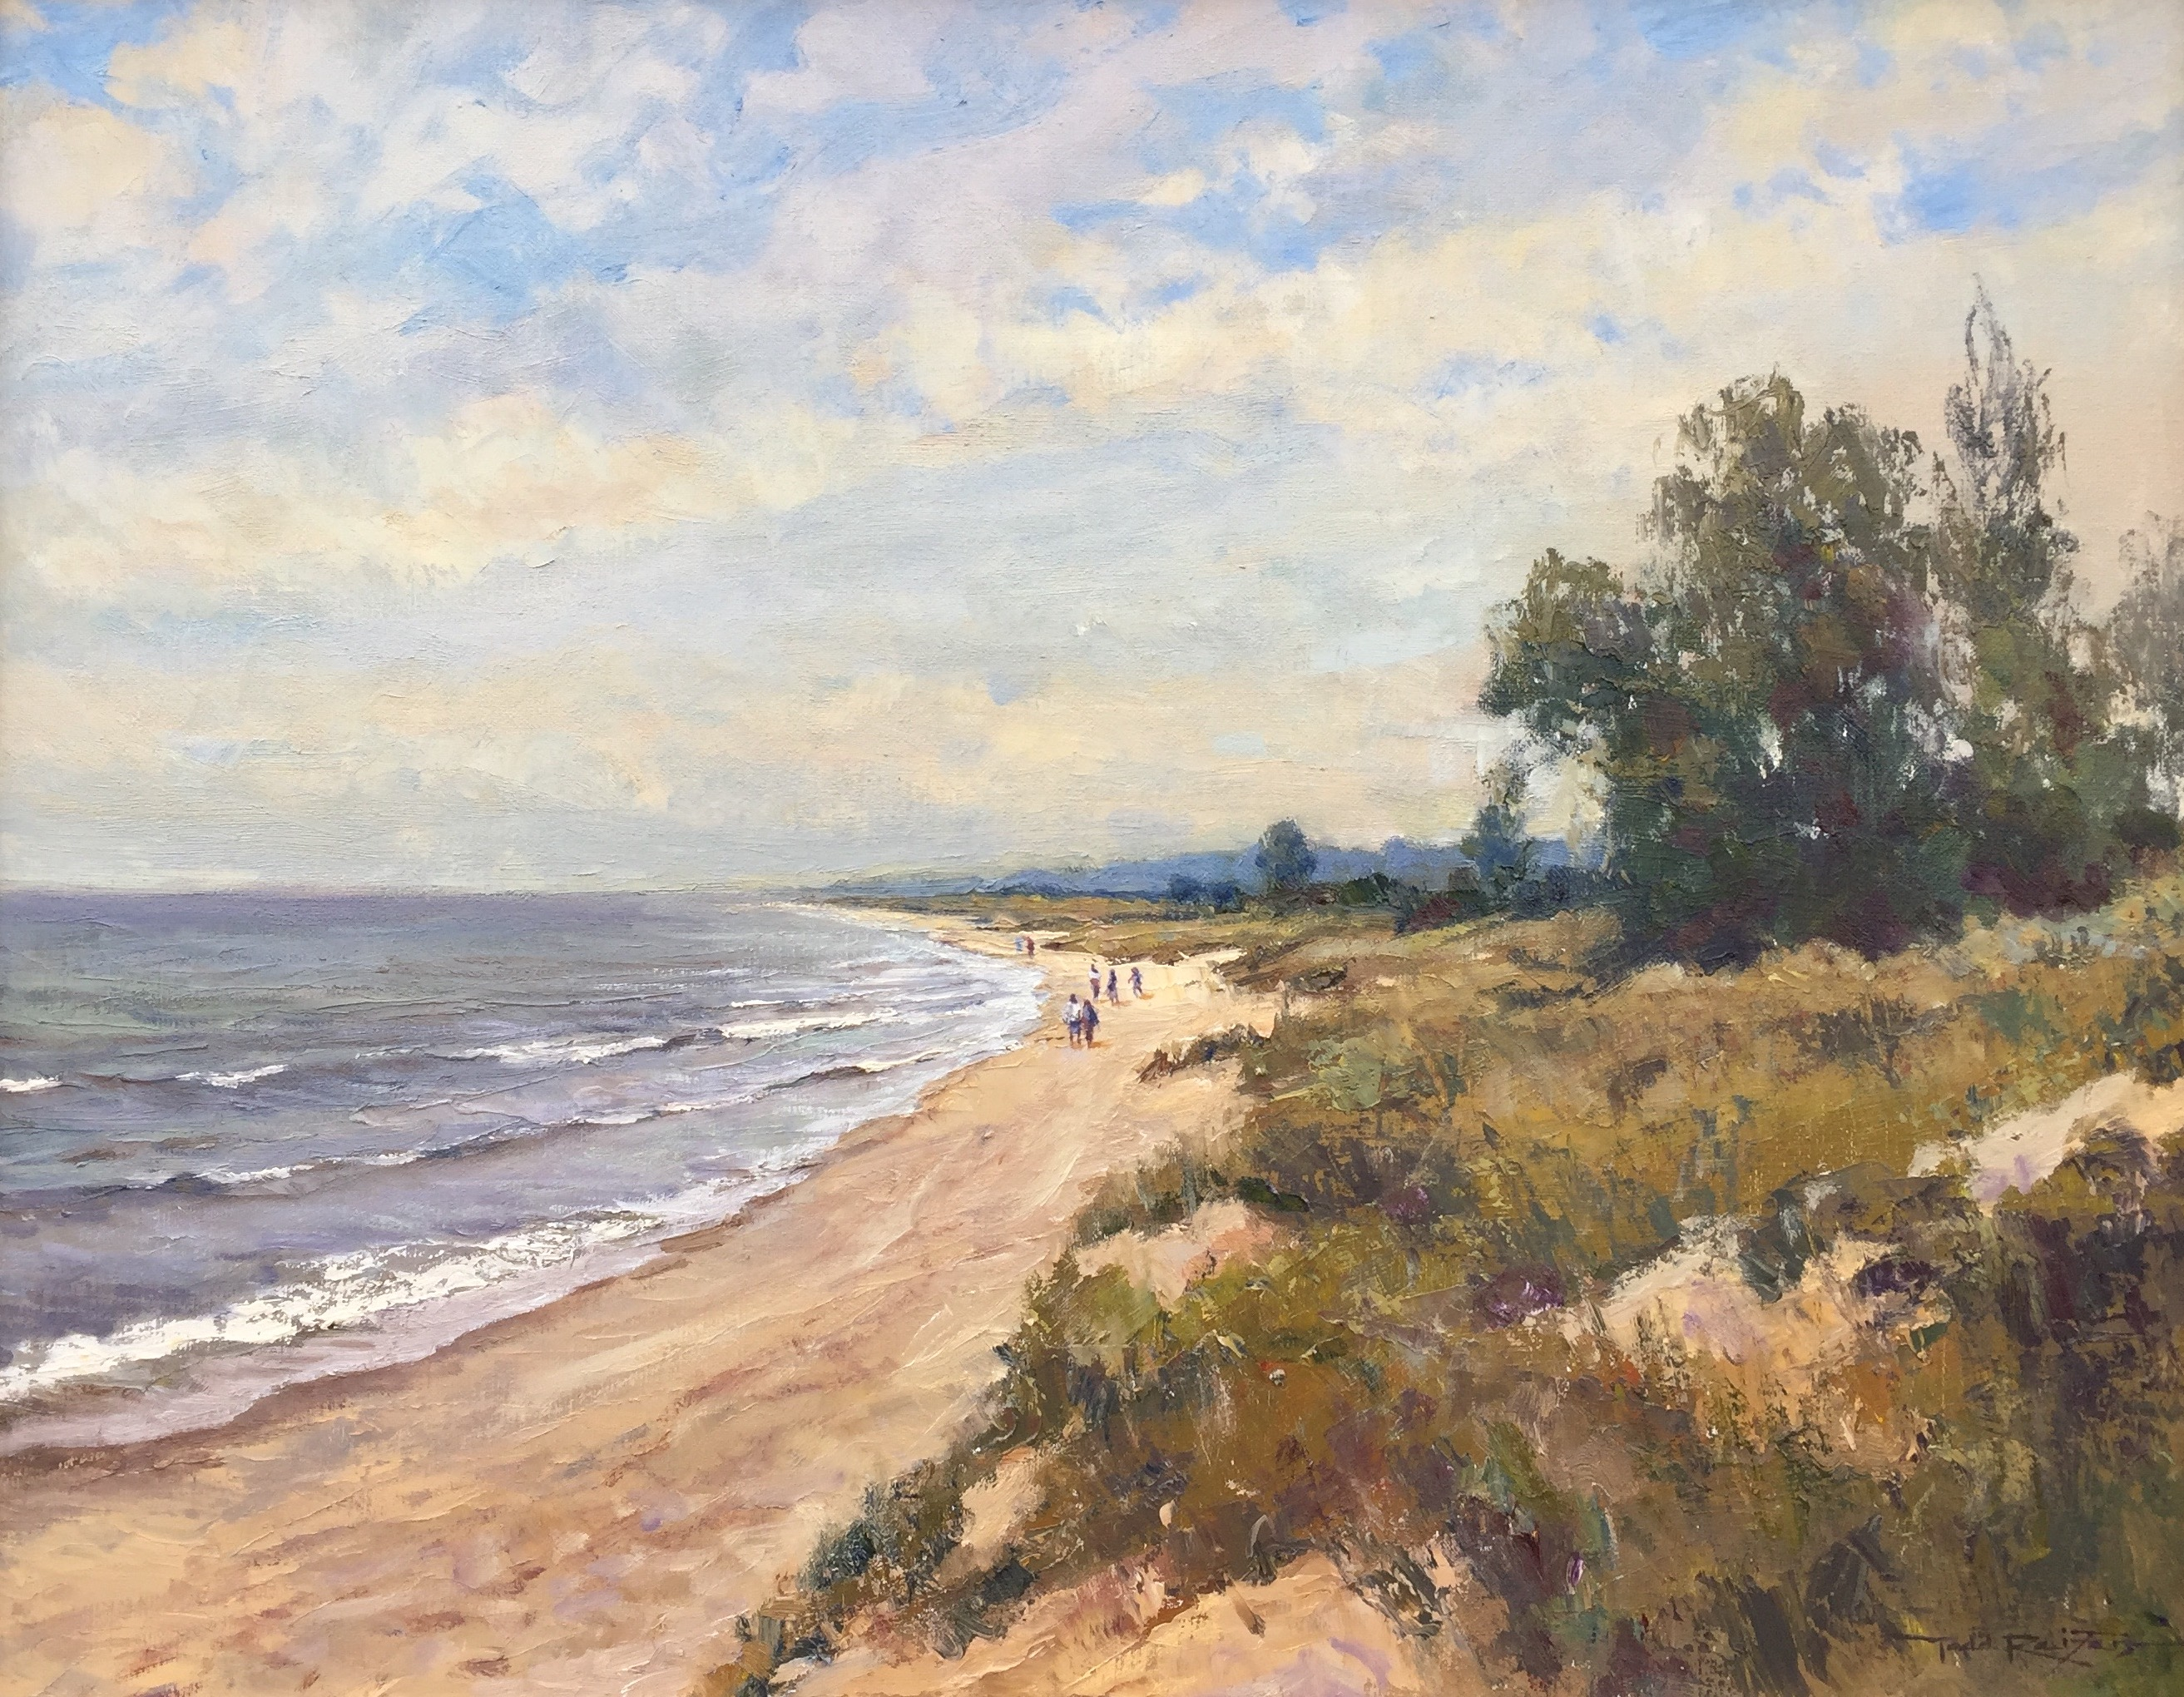 reifers-beachwalklakemichigan-cropped